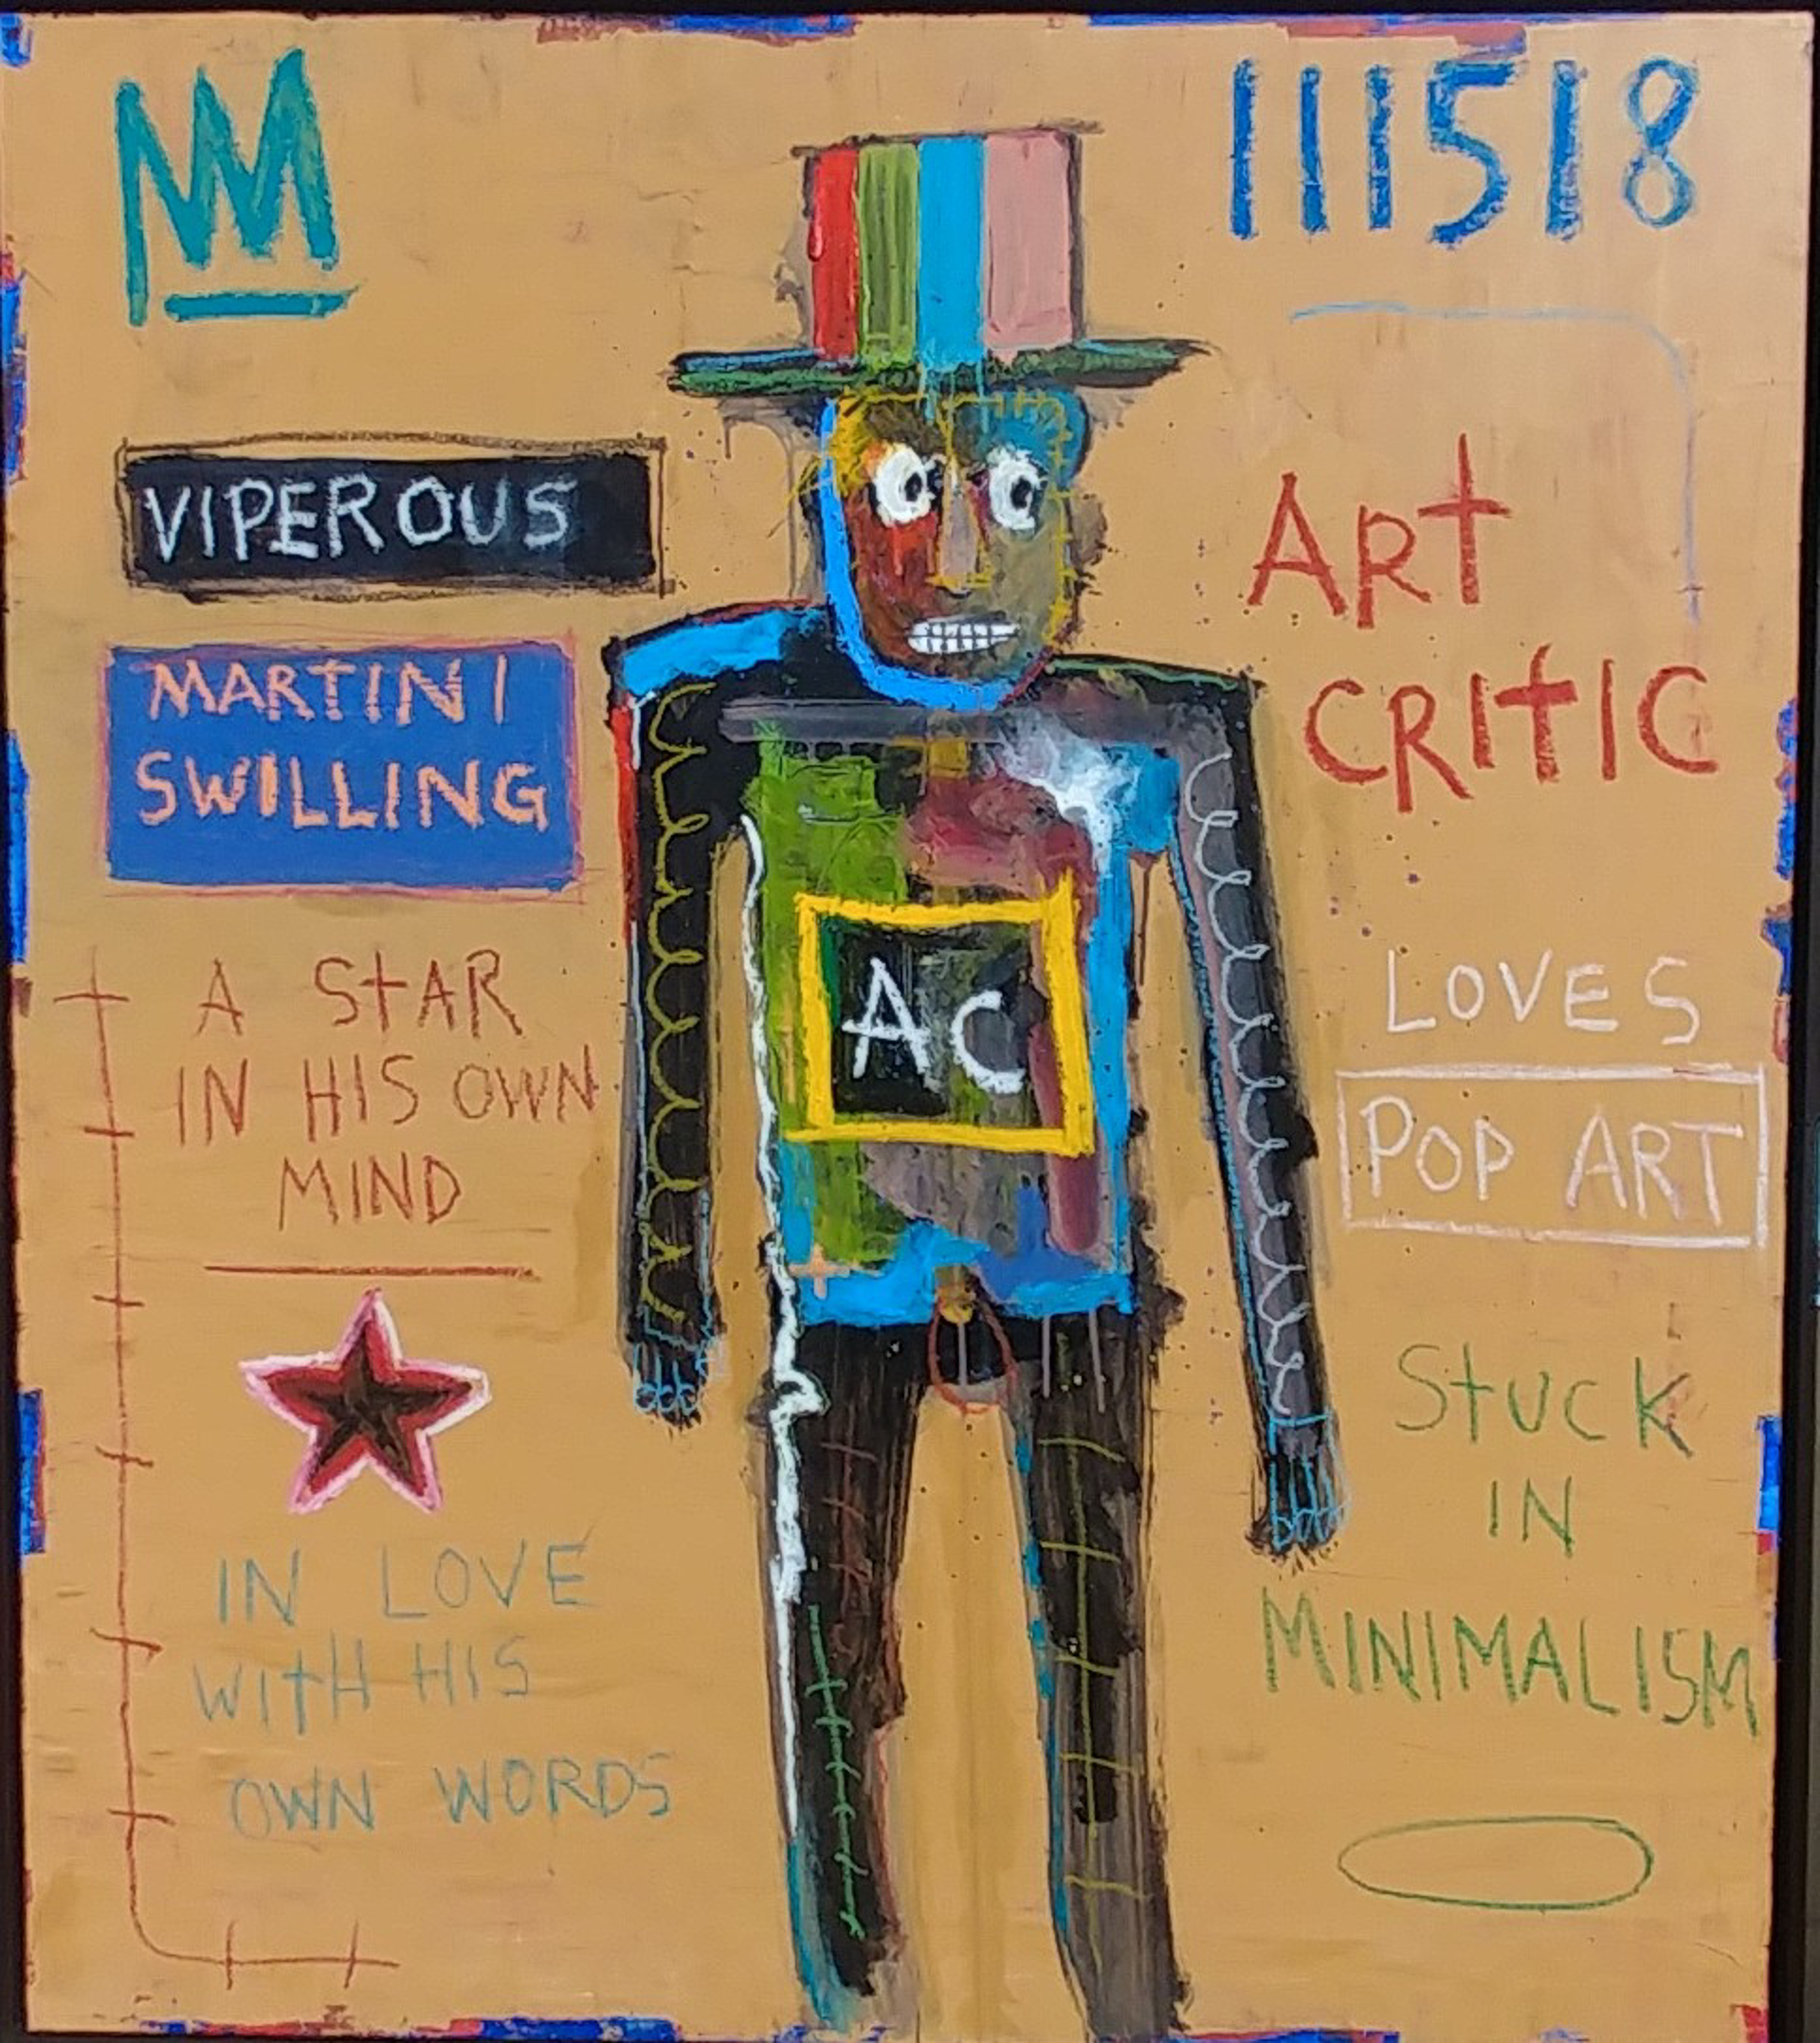 Viperous, Martini Swilling Art Critic by Michael Snodgrass